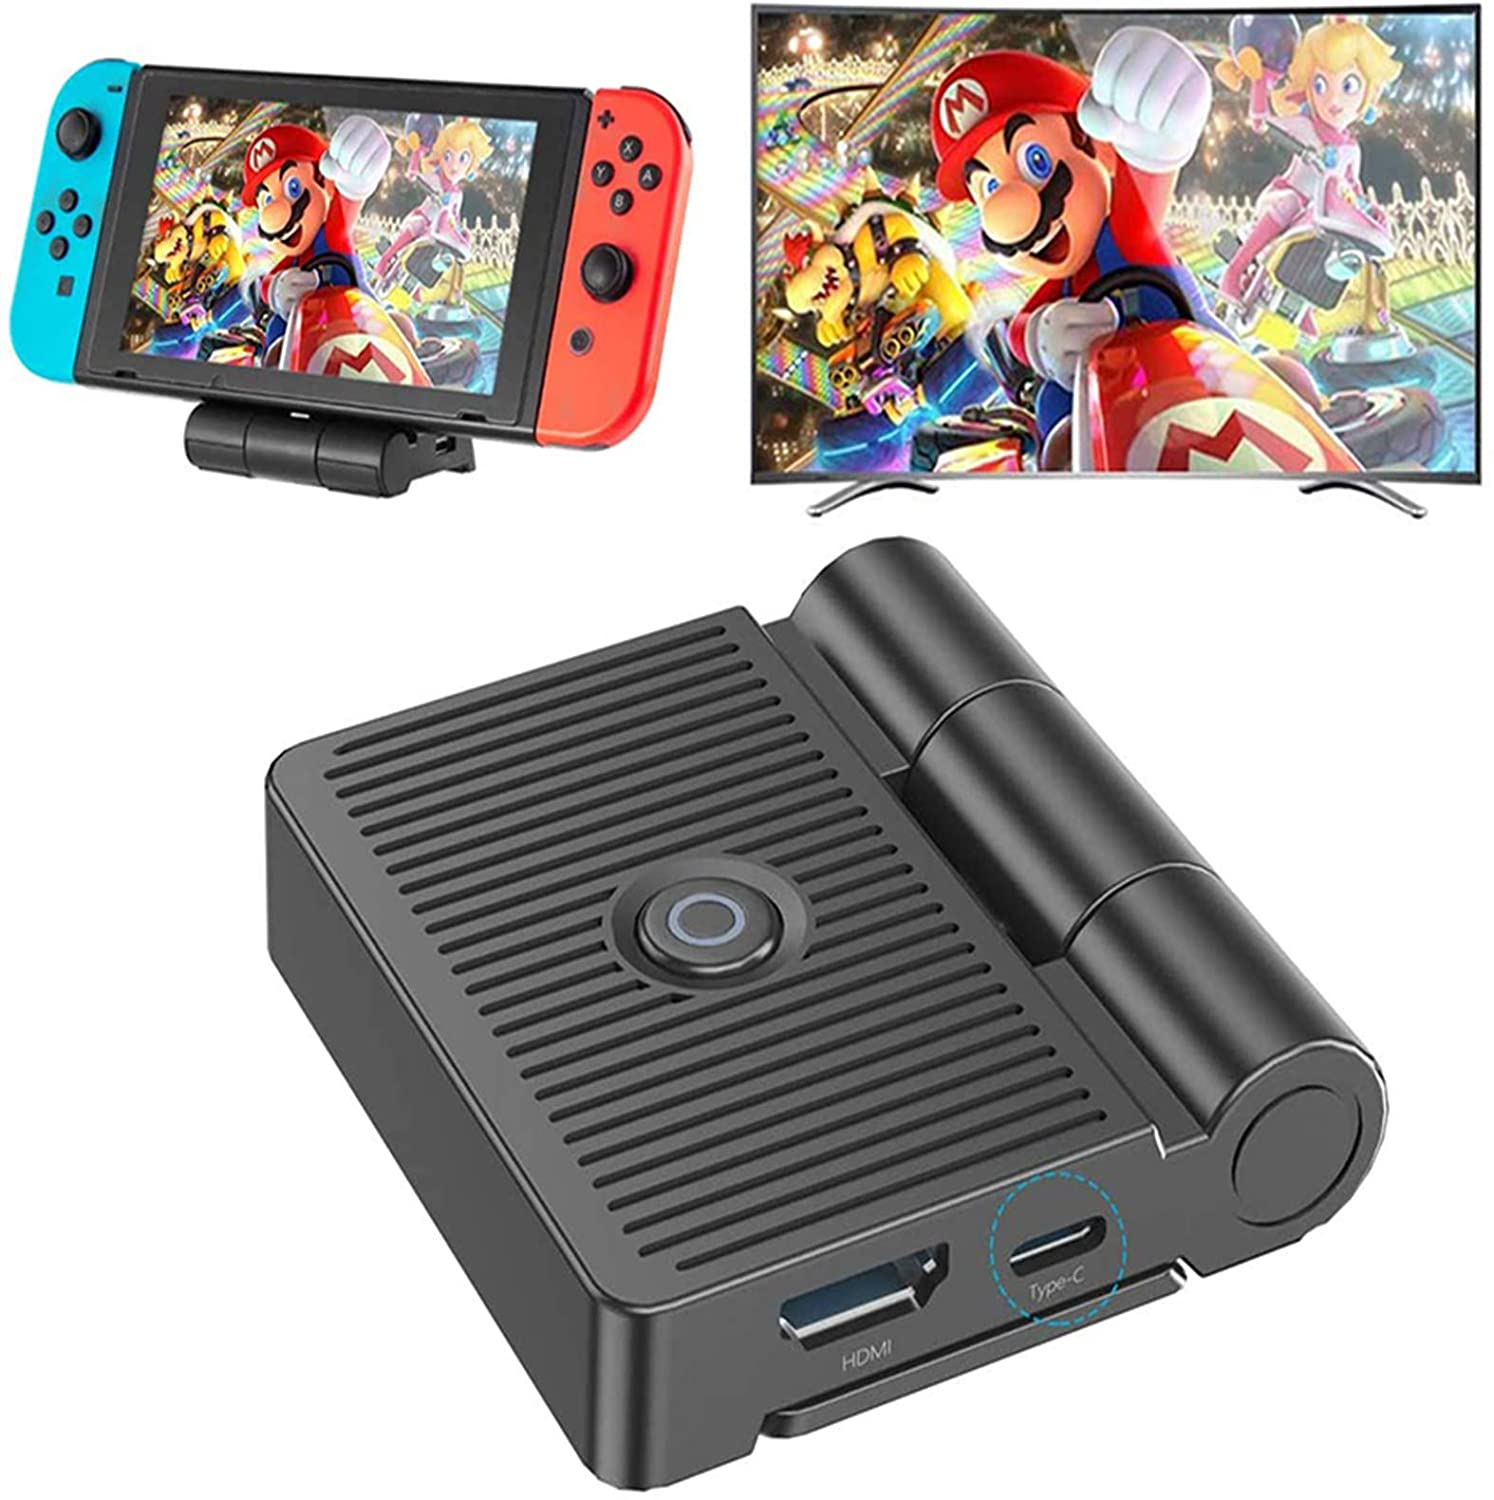 Switch TV Dock, Replacement for Nintendo Switch Dock Station Foldable with 1080P HDMI and USB 3.0 Port